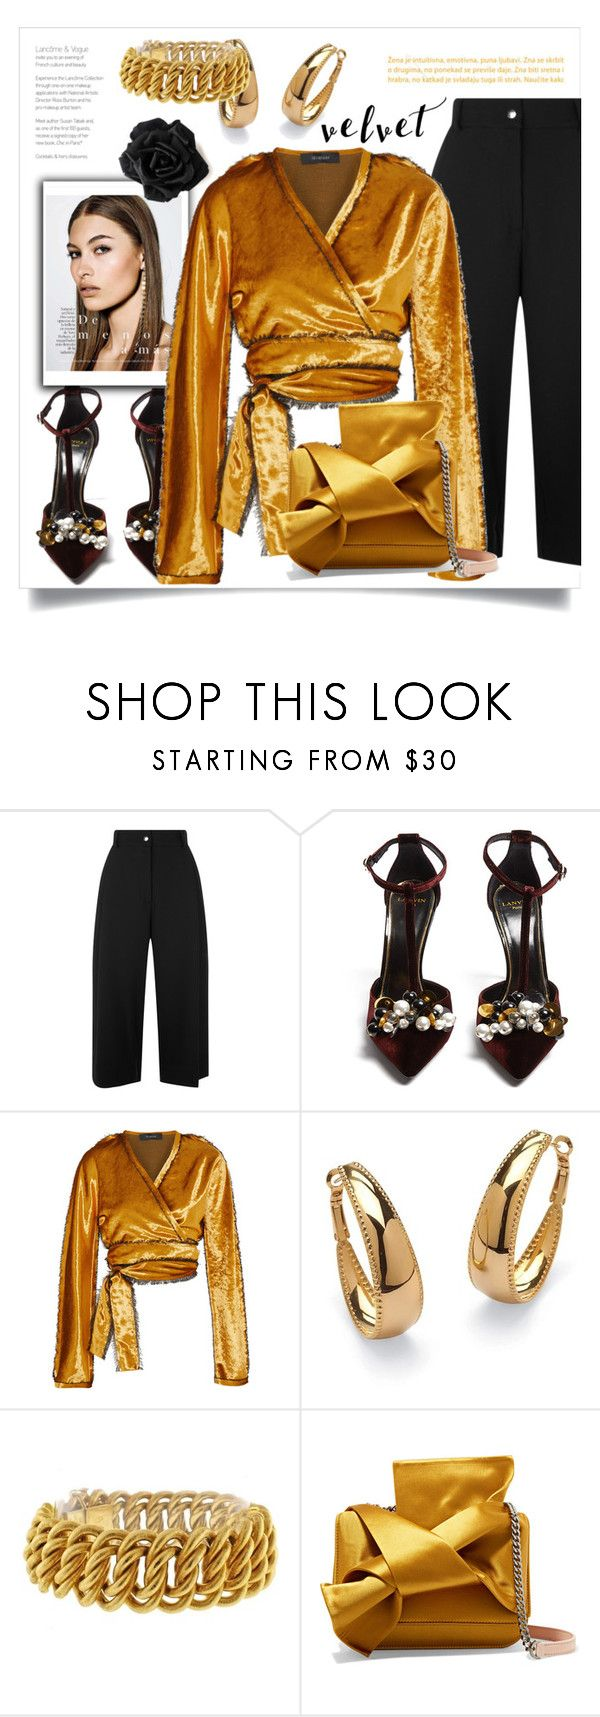 """""""Untitled #797"""" by metka-belina ❤ liked on Polyvore featuring Public School, Lanvin, Sid Neigum, Palm Beach Jewelry, Buccellati and N°21"""